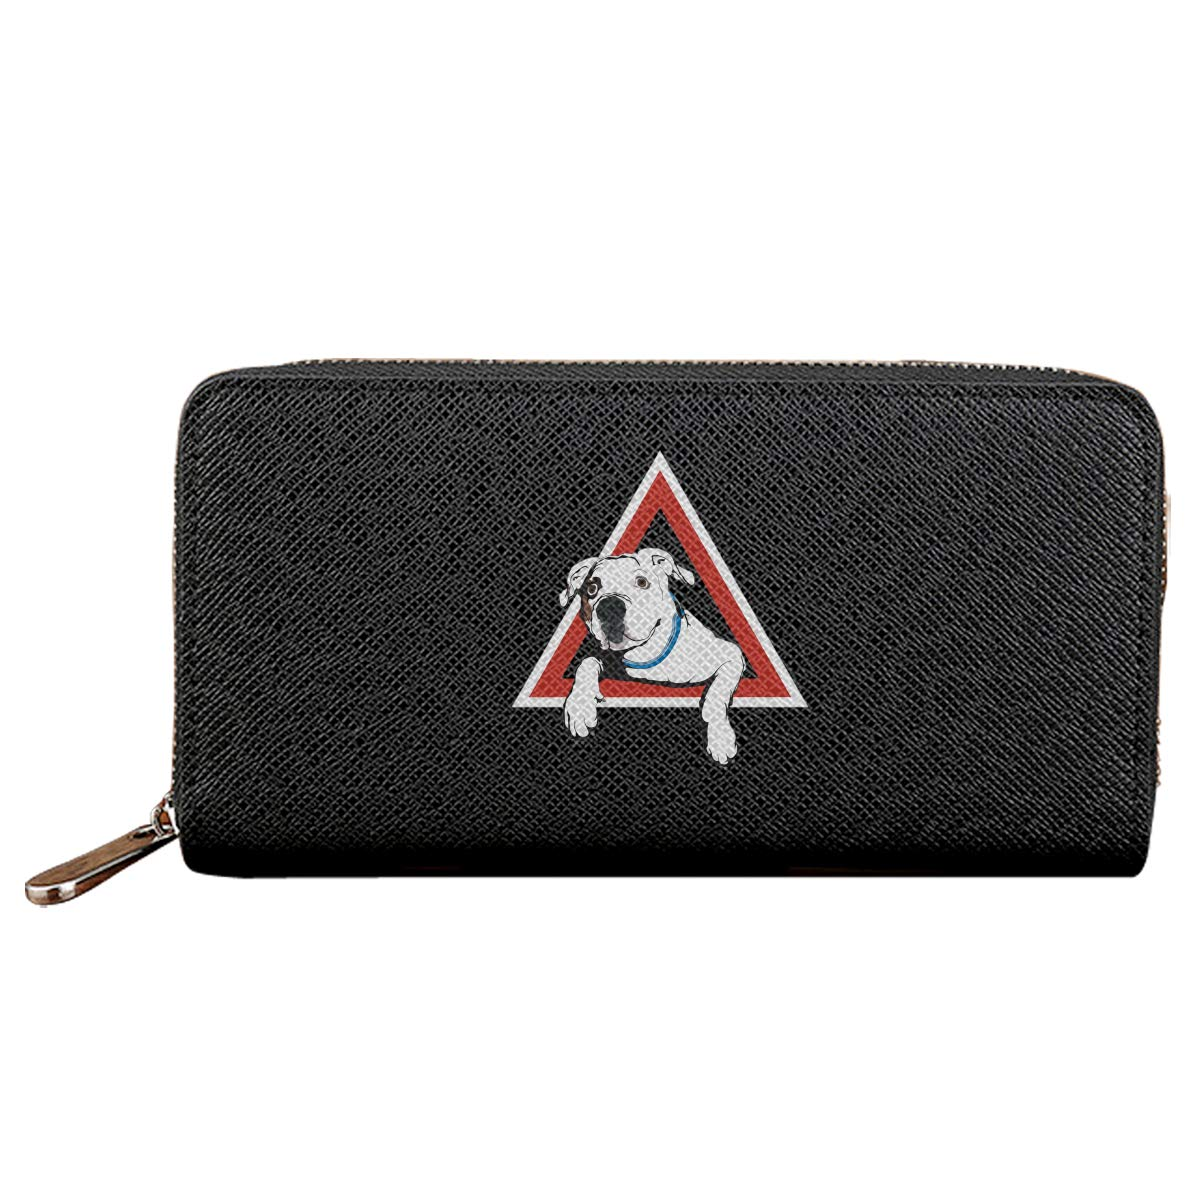 Jist Zovi American Bulldog On Board Mens Soft Leather Zipper Long Wallet Long Purse Black Mens Wallet Money Clip with 2 Cash Compartment Suit for Business Man